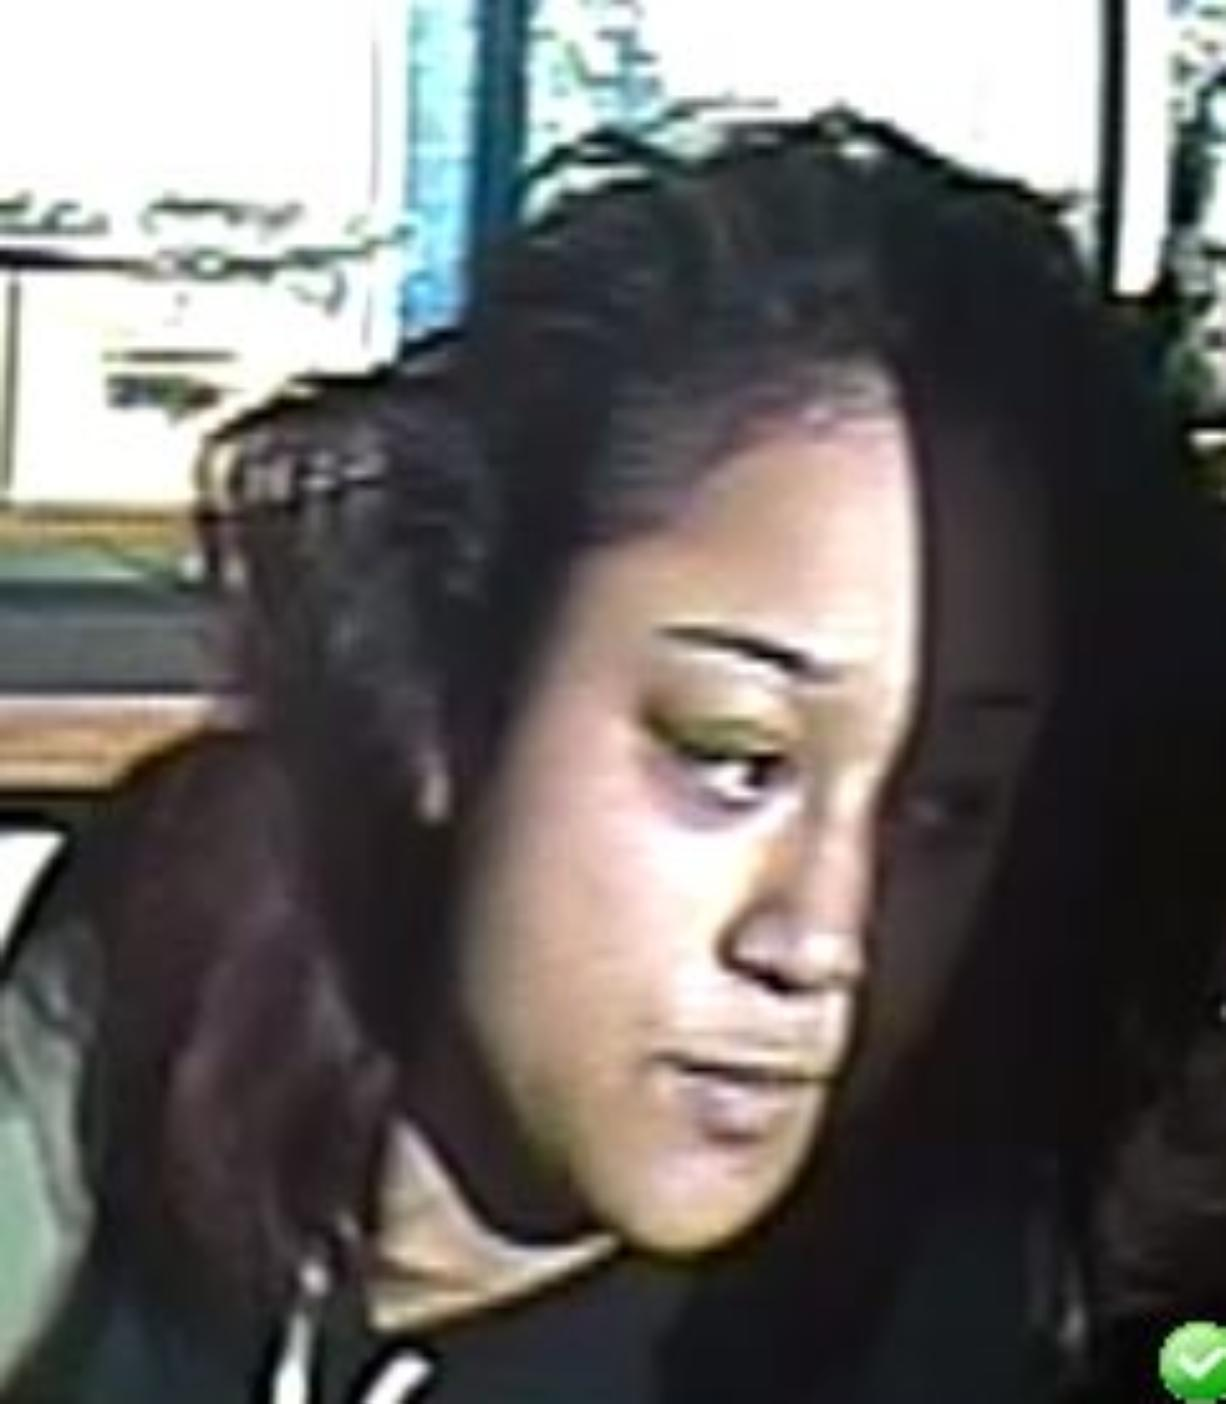 The Vancouver Police Department is asking for the public's help identifying this woman, who is a suspect in Wednesday's homicide investigation in downtown Vancouver.